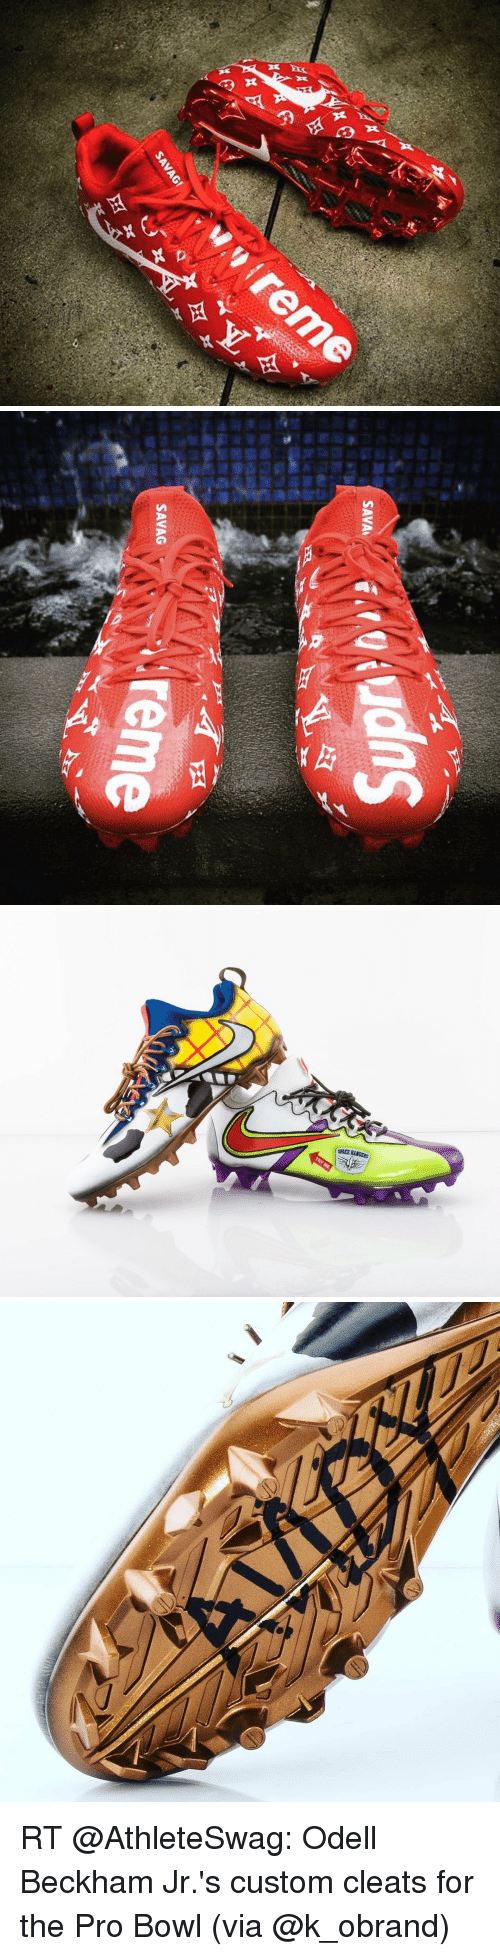 Memes, Odell Beckham Jr., and Sang: din  区  x   cQiuds  SAVA  PA  SANG i reme  SAVAG  201   SPACE RANGERS RT @AthleteSwag: Odell Beckham Jr.'s custom cleats for the Pro Bowl (via @k_obrand)